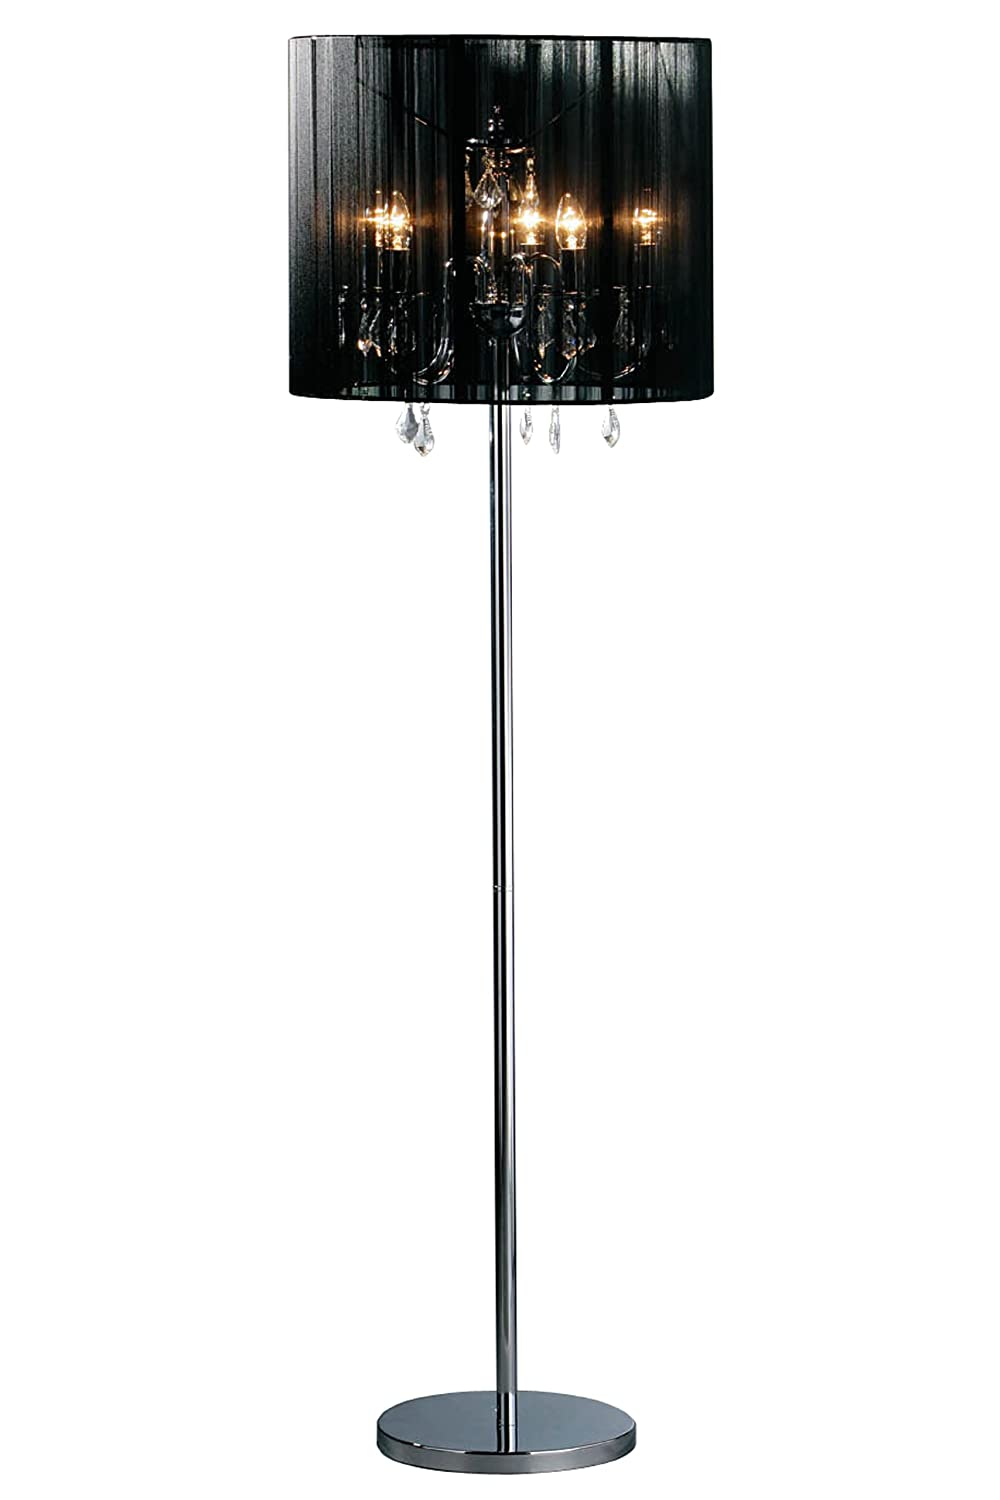 Premier housewares chandelier floor lamp with fabric shade black premier housewares chandelier floor lamp with fabric shade black amazon lighting aloadofball Images